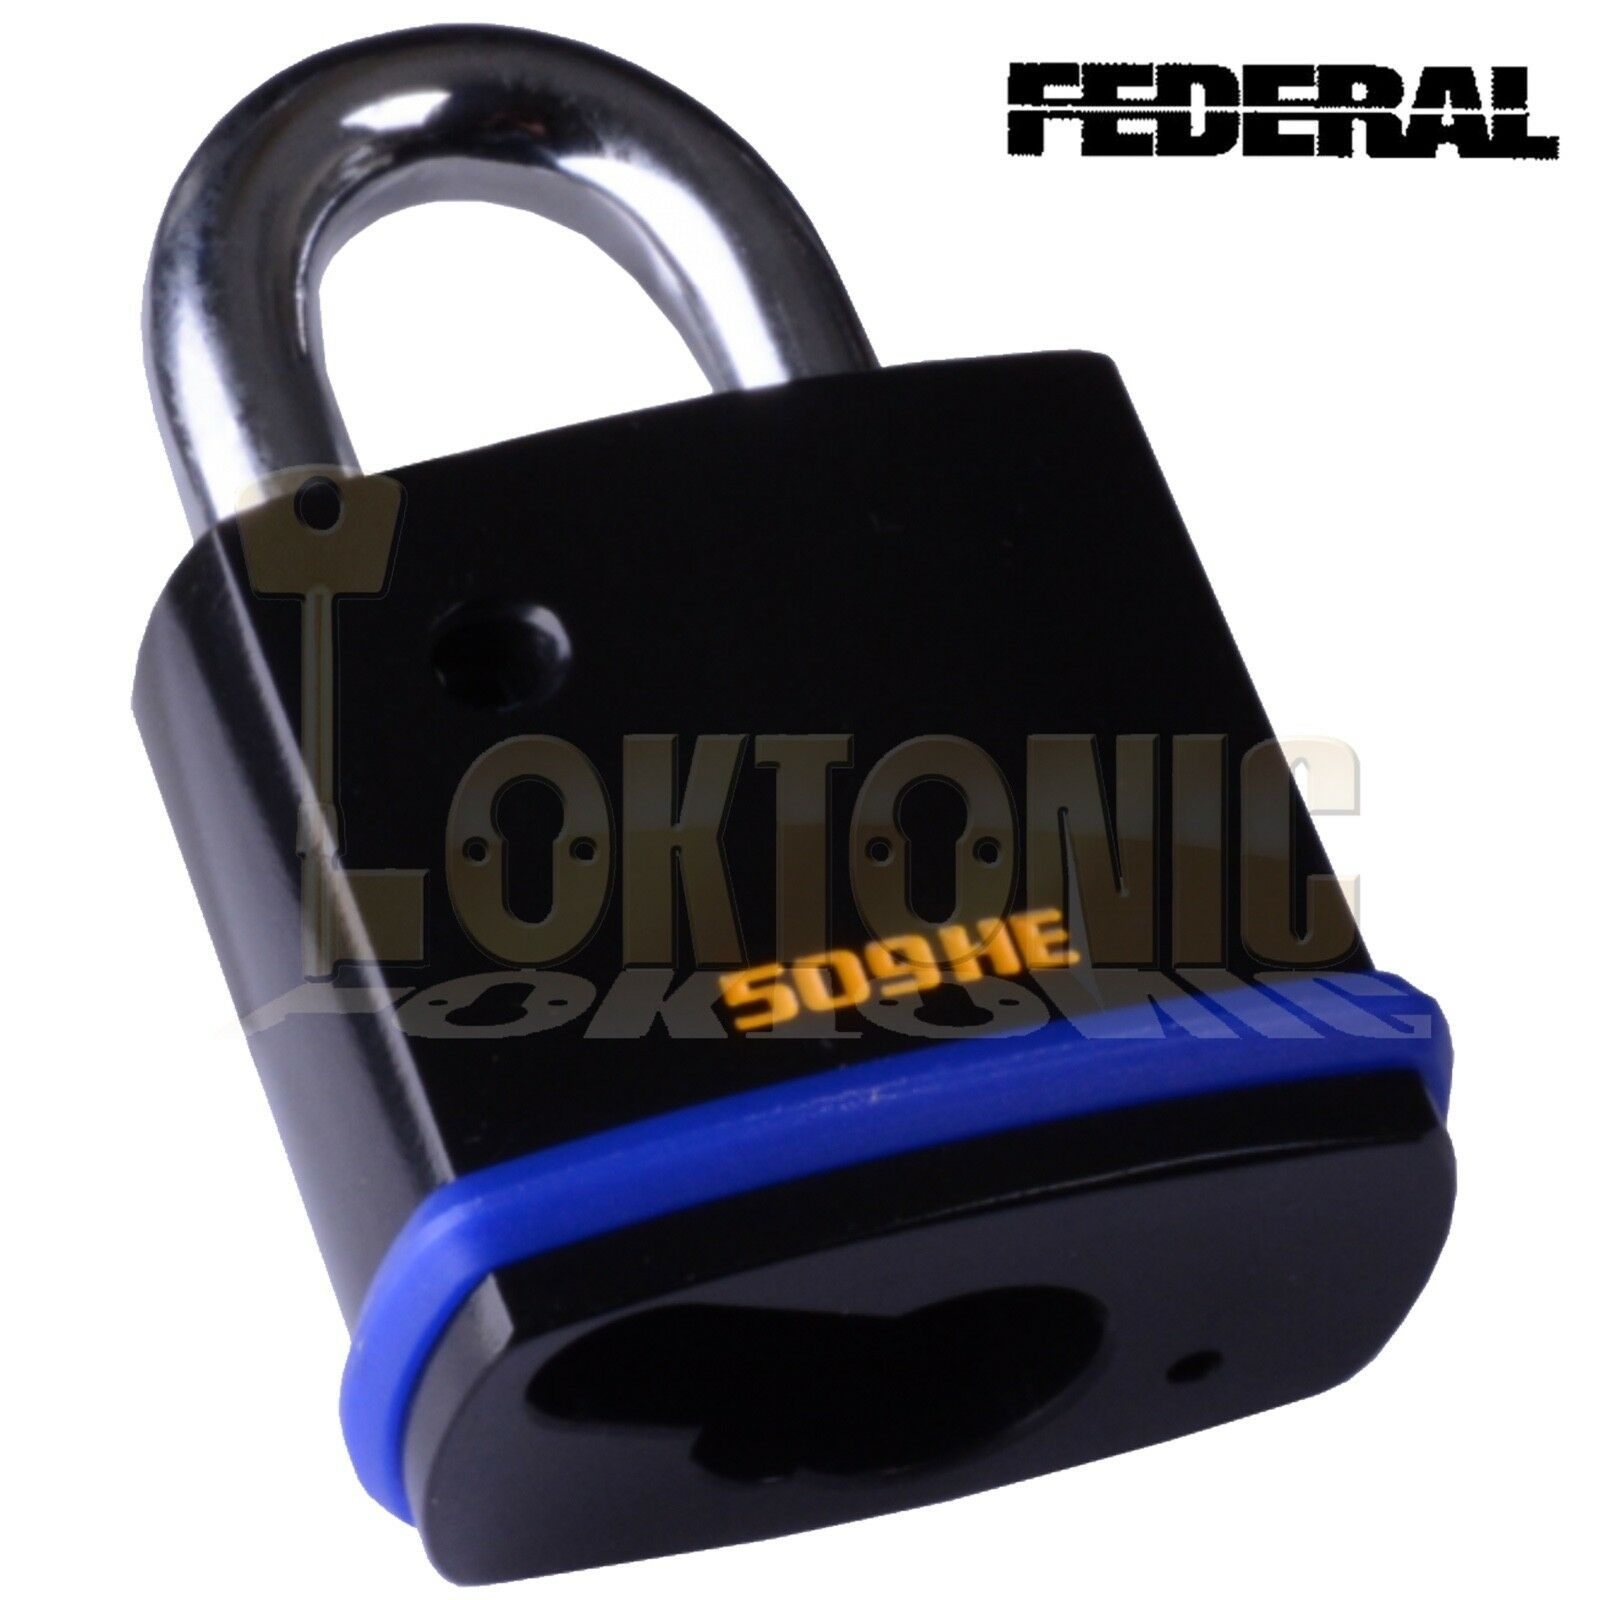 Federal Fd509 He Open Shackle Padlock Body To Suit Half